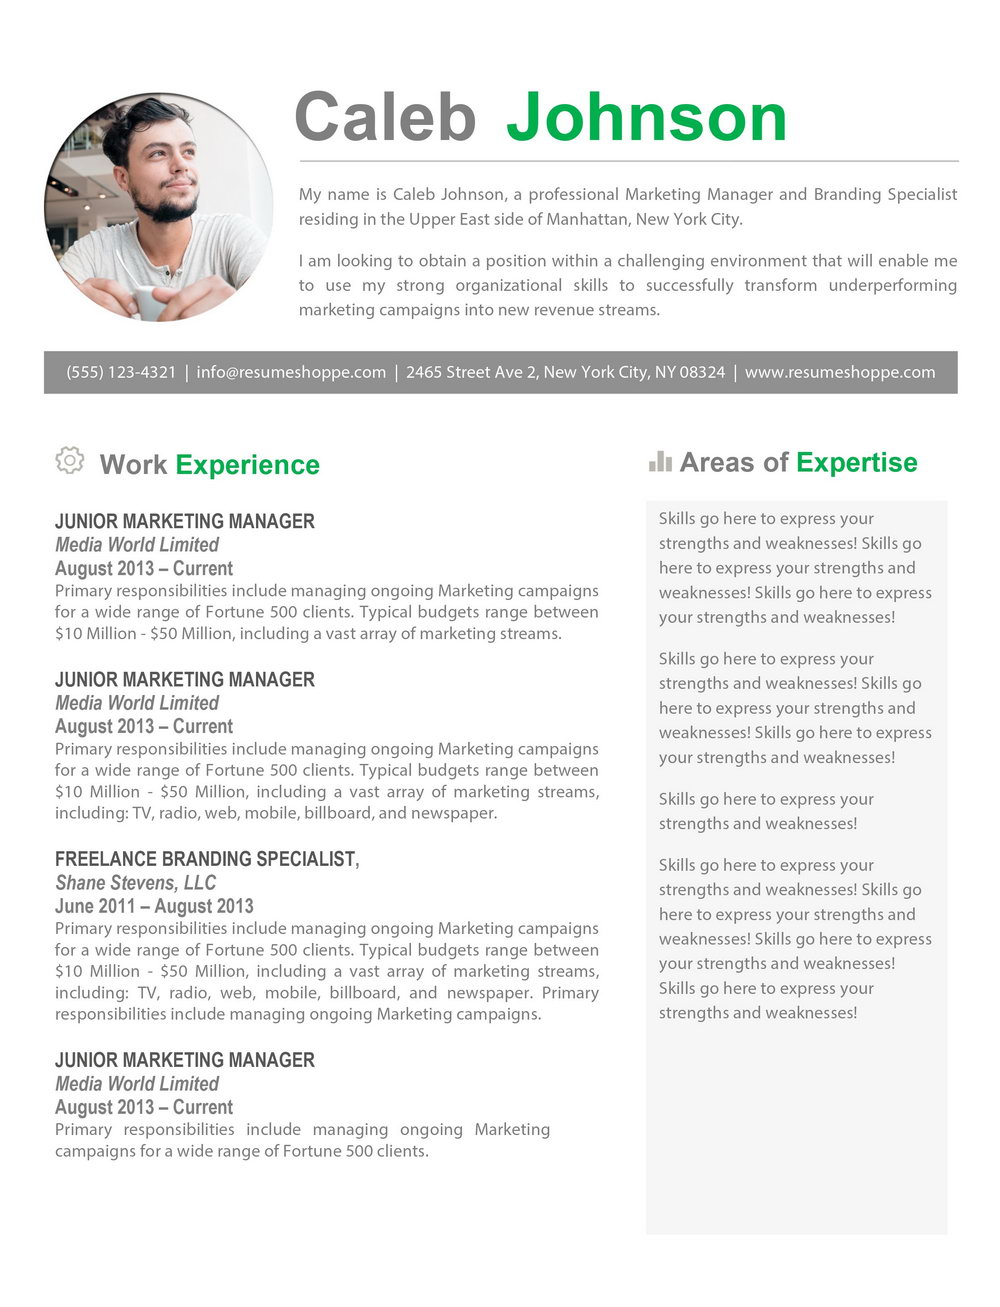 Free Resume Templates Macbook Pro